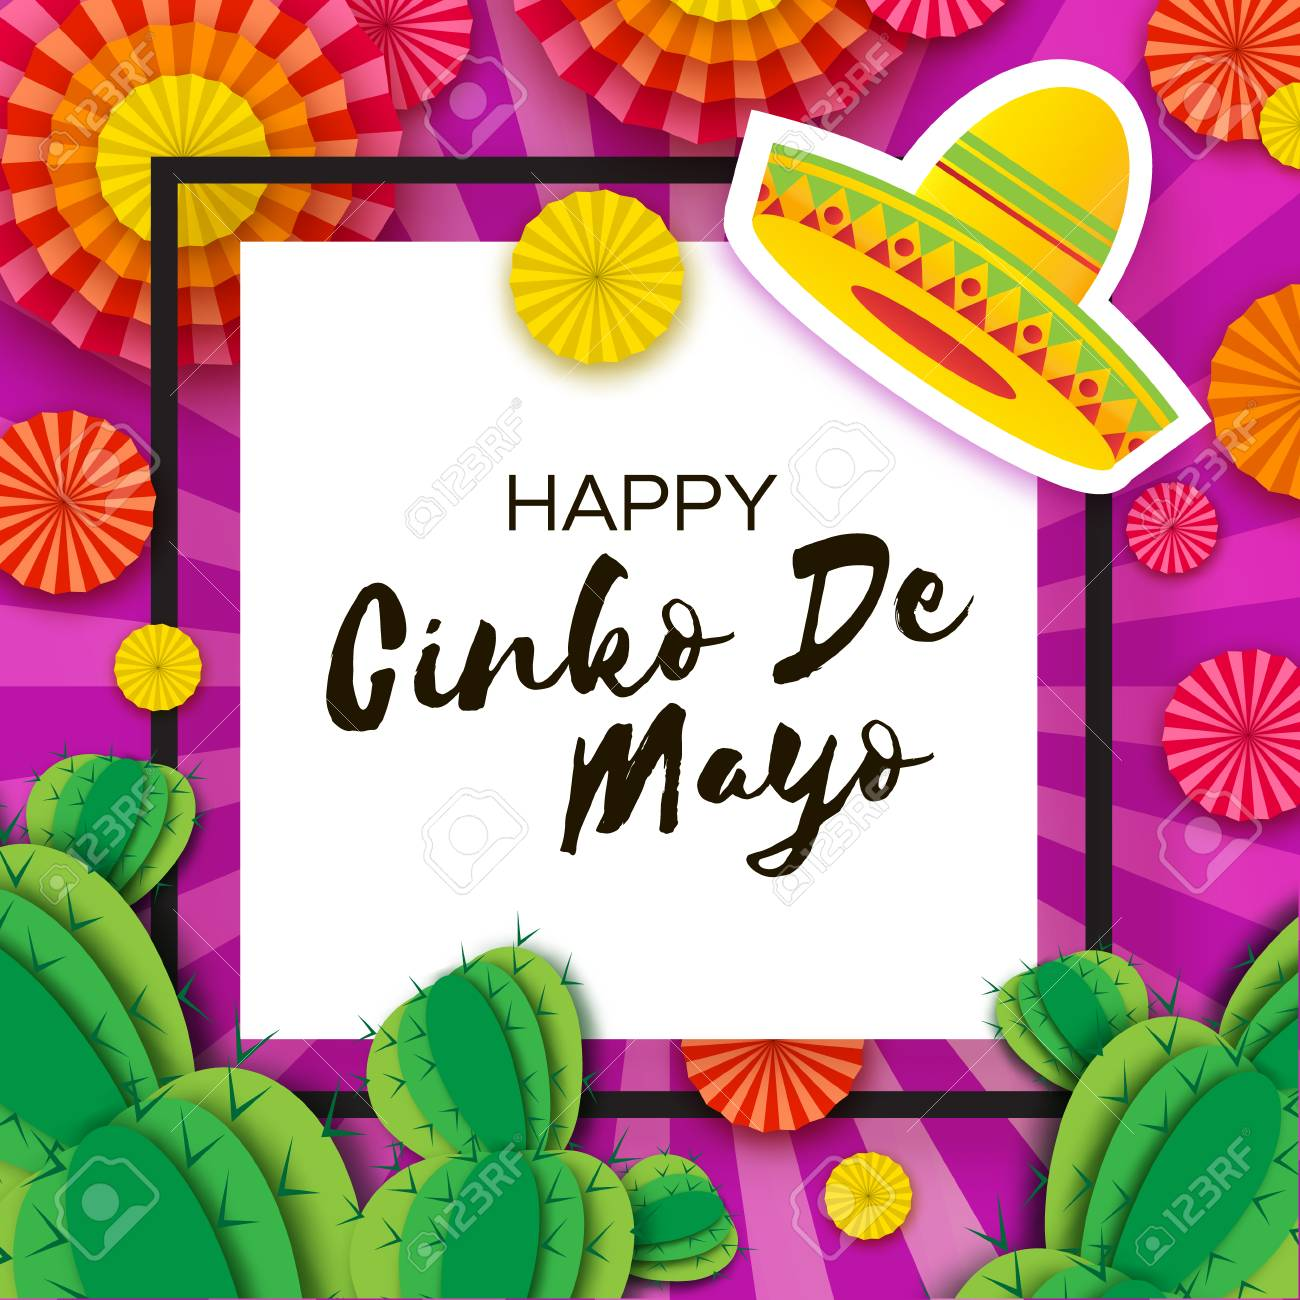 Happy cinco de mayo greeting card colorful paper fan and cactus happy cinco de mayo greeting card colorful paper fan and cactus in paper cut style m4hsunfo